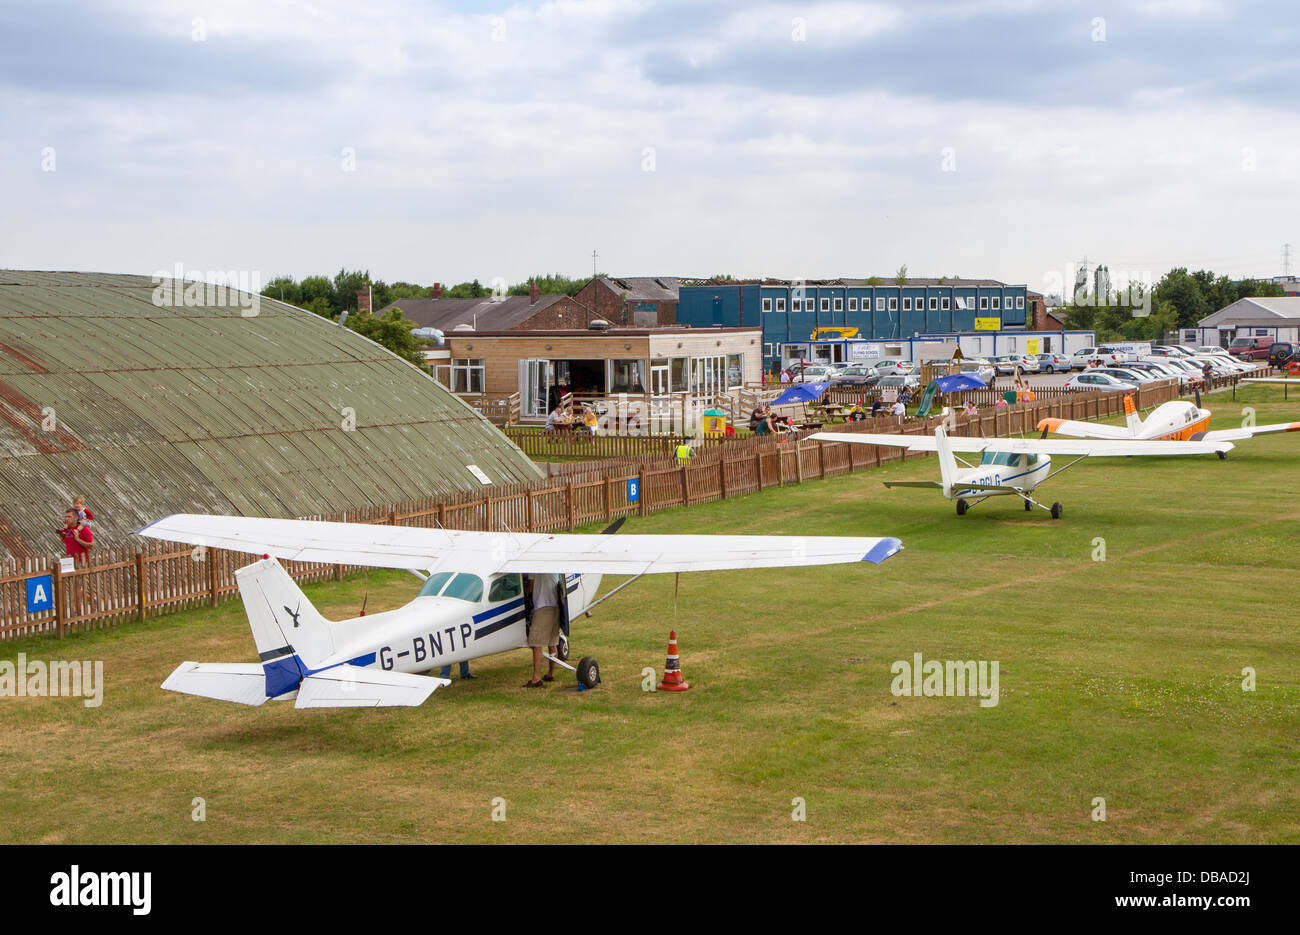 Light aircraft parked on airfield at City Airport formerly Barton Aerodrome in Eccles, Manchester - Stock Image